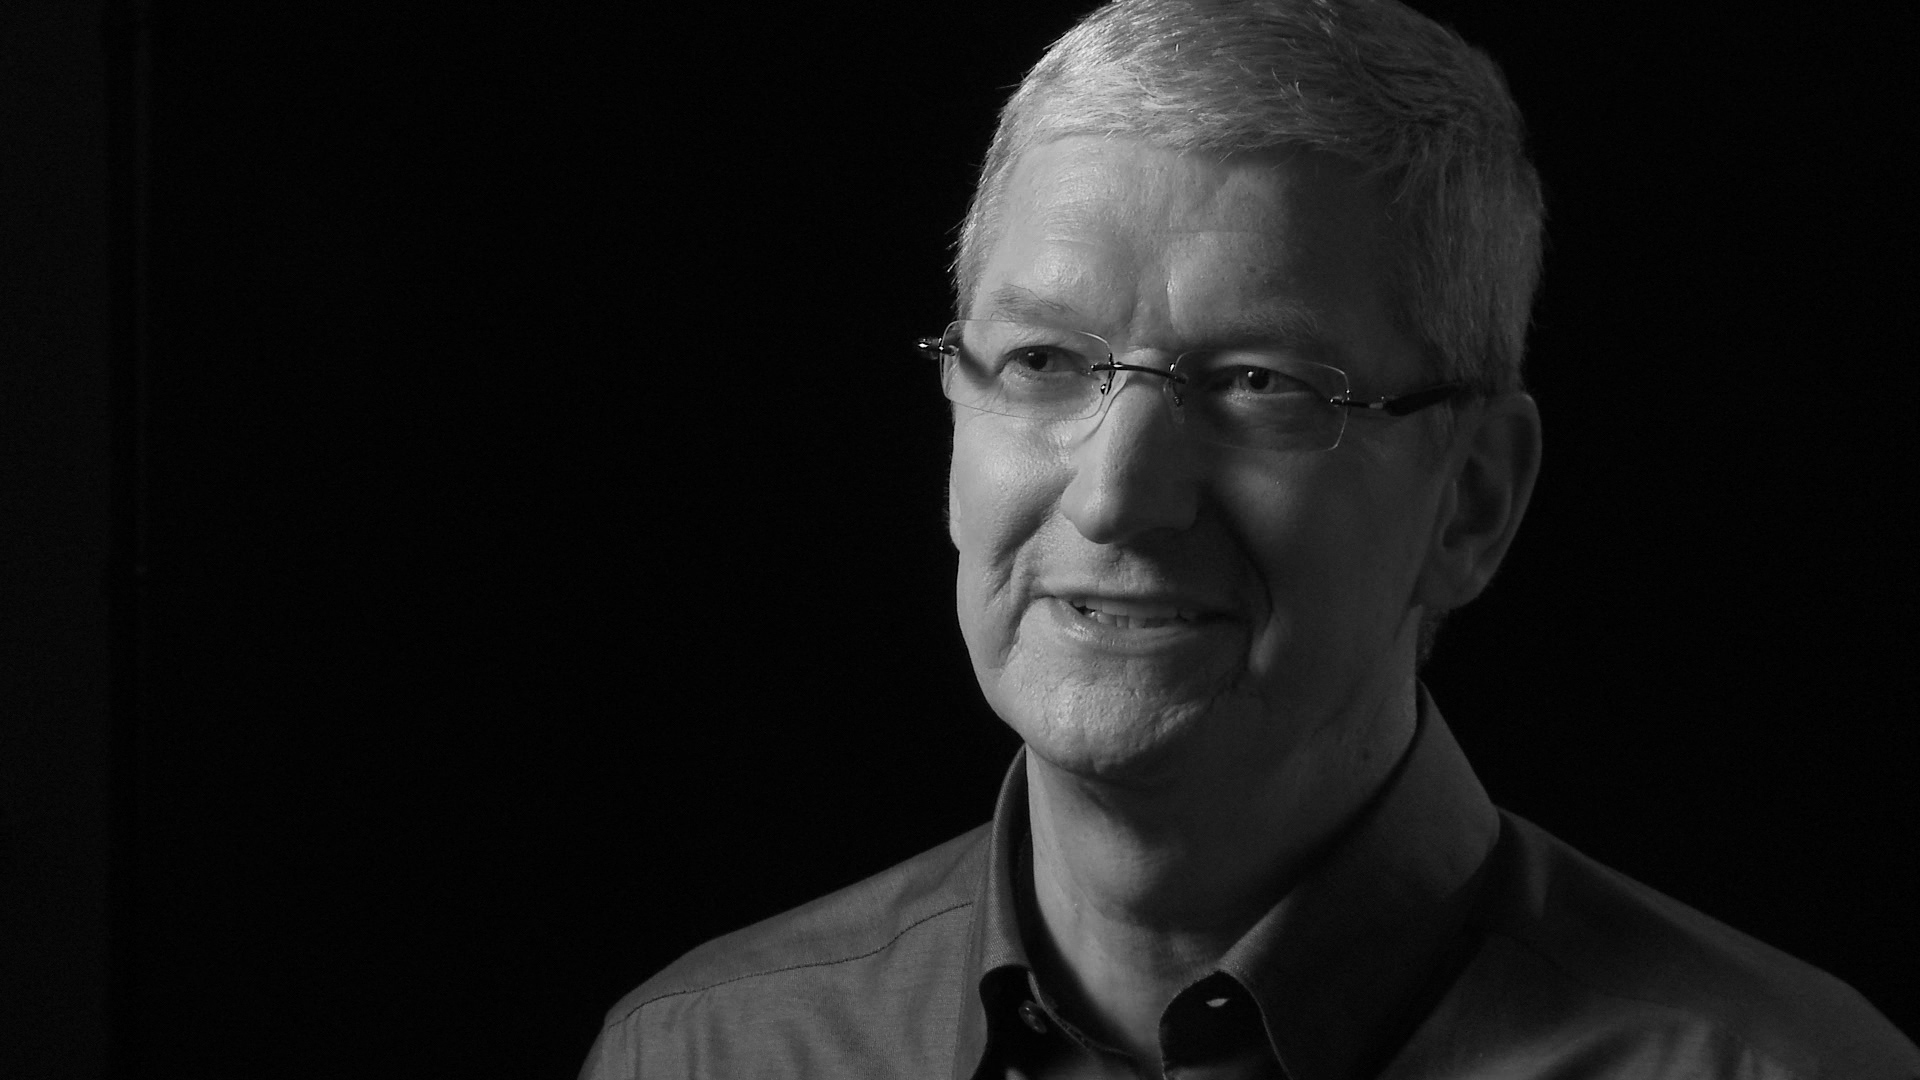 1920x1080 - Tim Cook Wallpapers 14